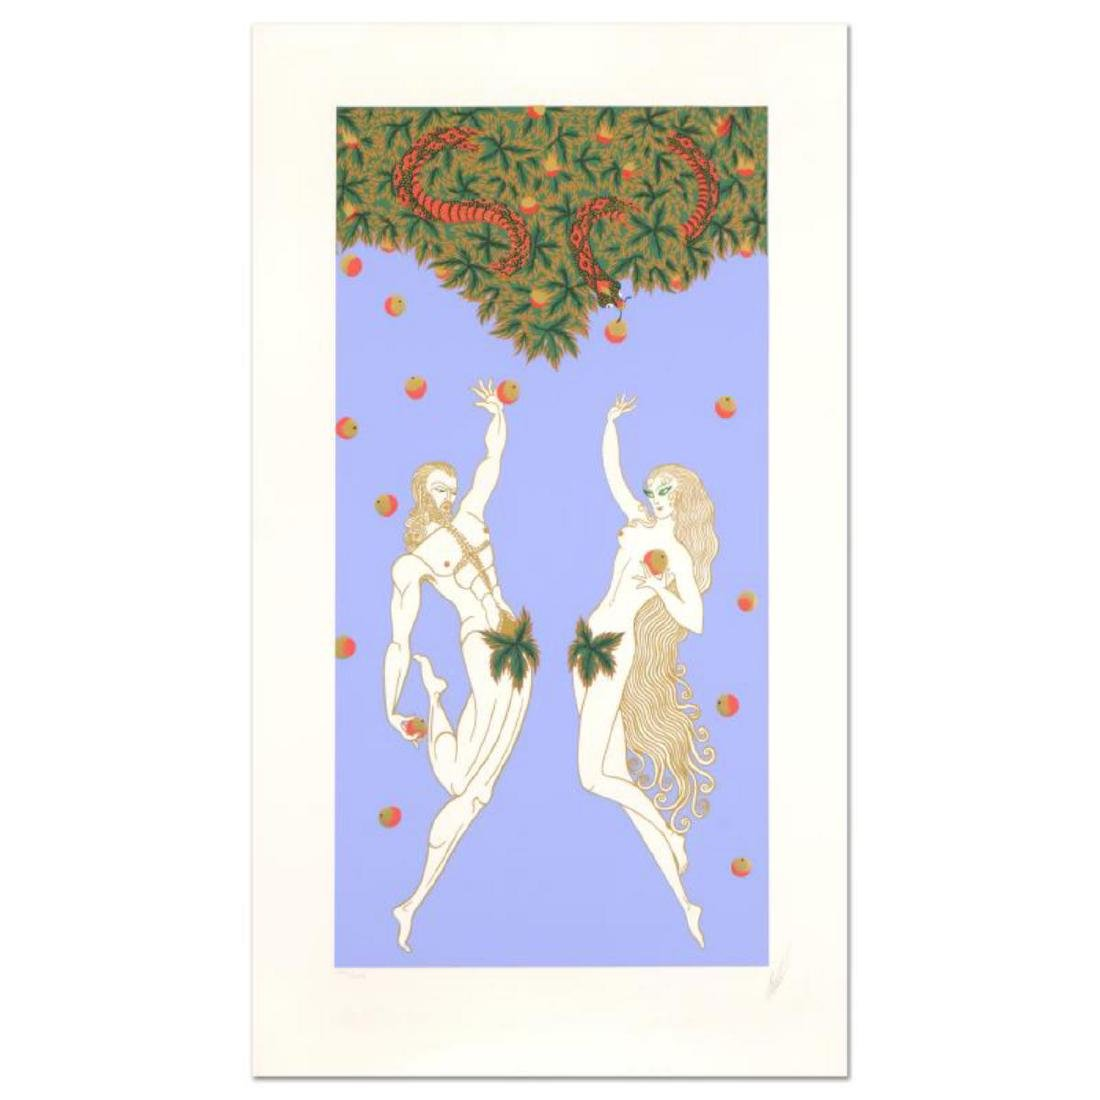 "Erte (1892-1990), ""Adam and Eve"" Limited Edition"